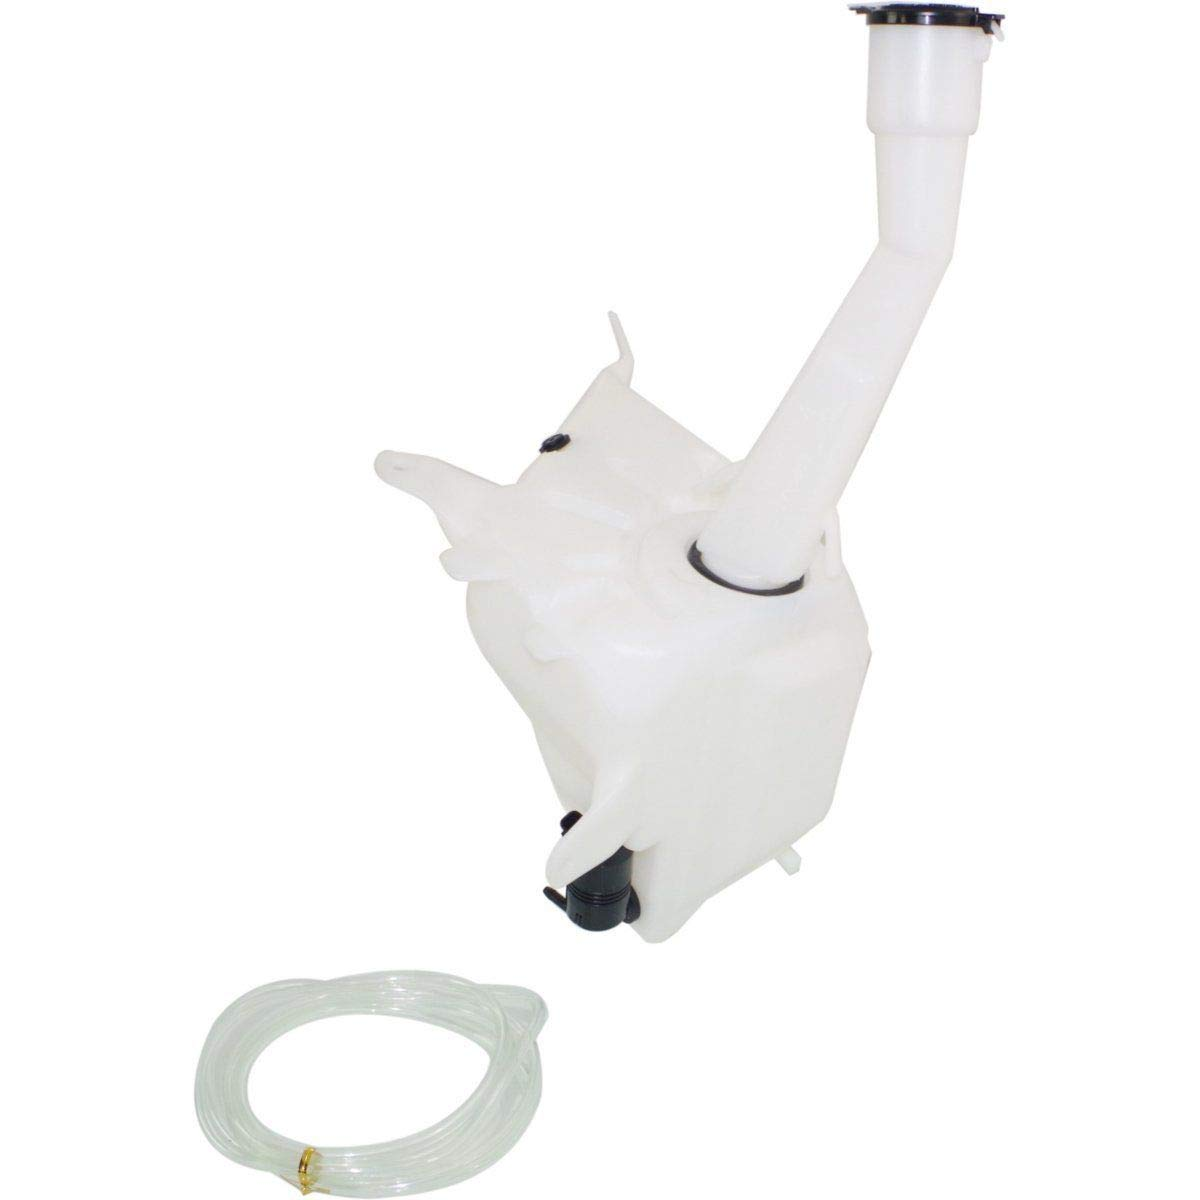 New Windshield Washer Tank For 1998-2004 Toyota Tacoma Includes Cap And Pump With Cold Weather Package With Sensor Hole TO1288184